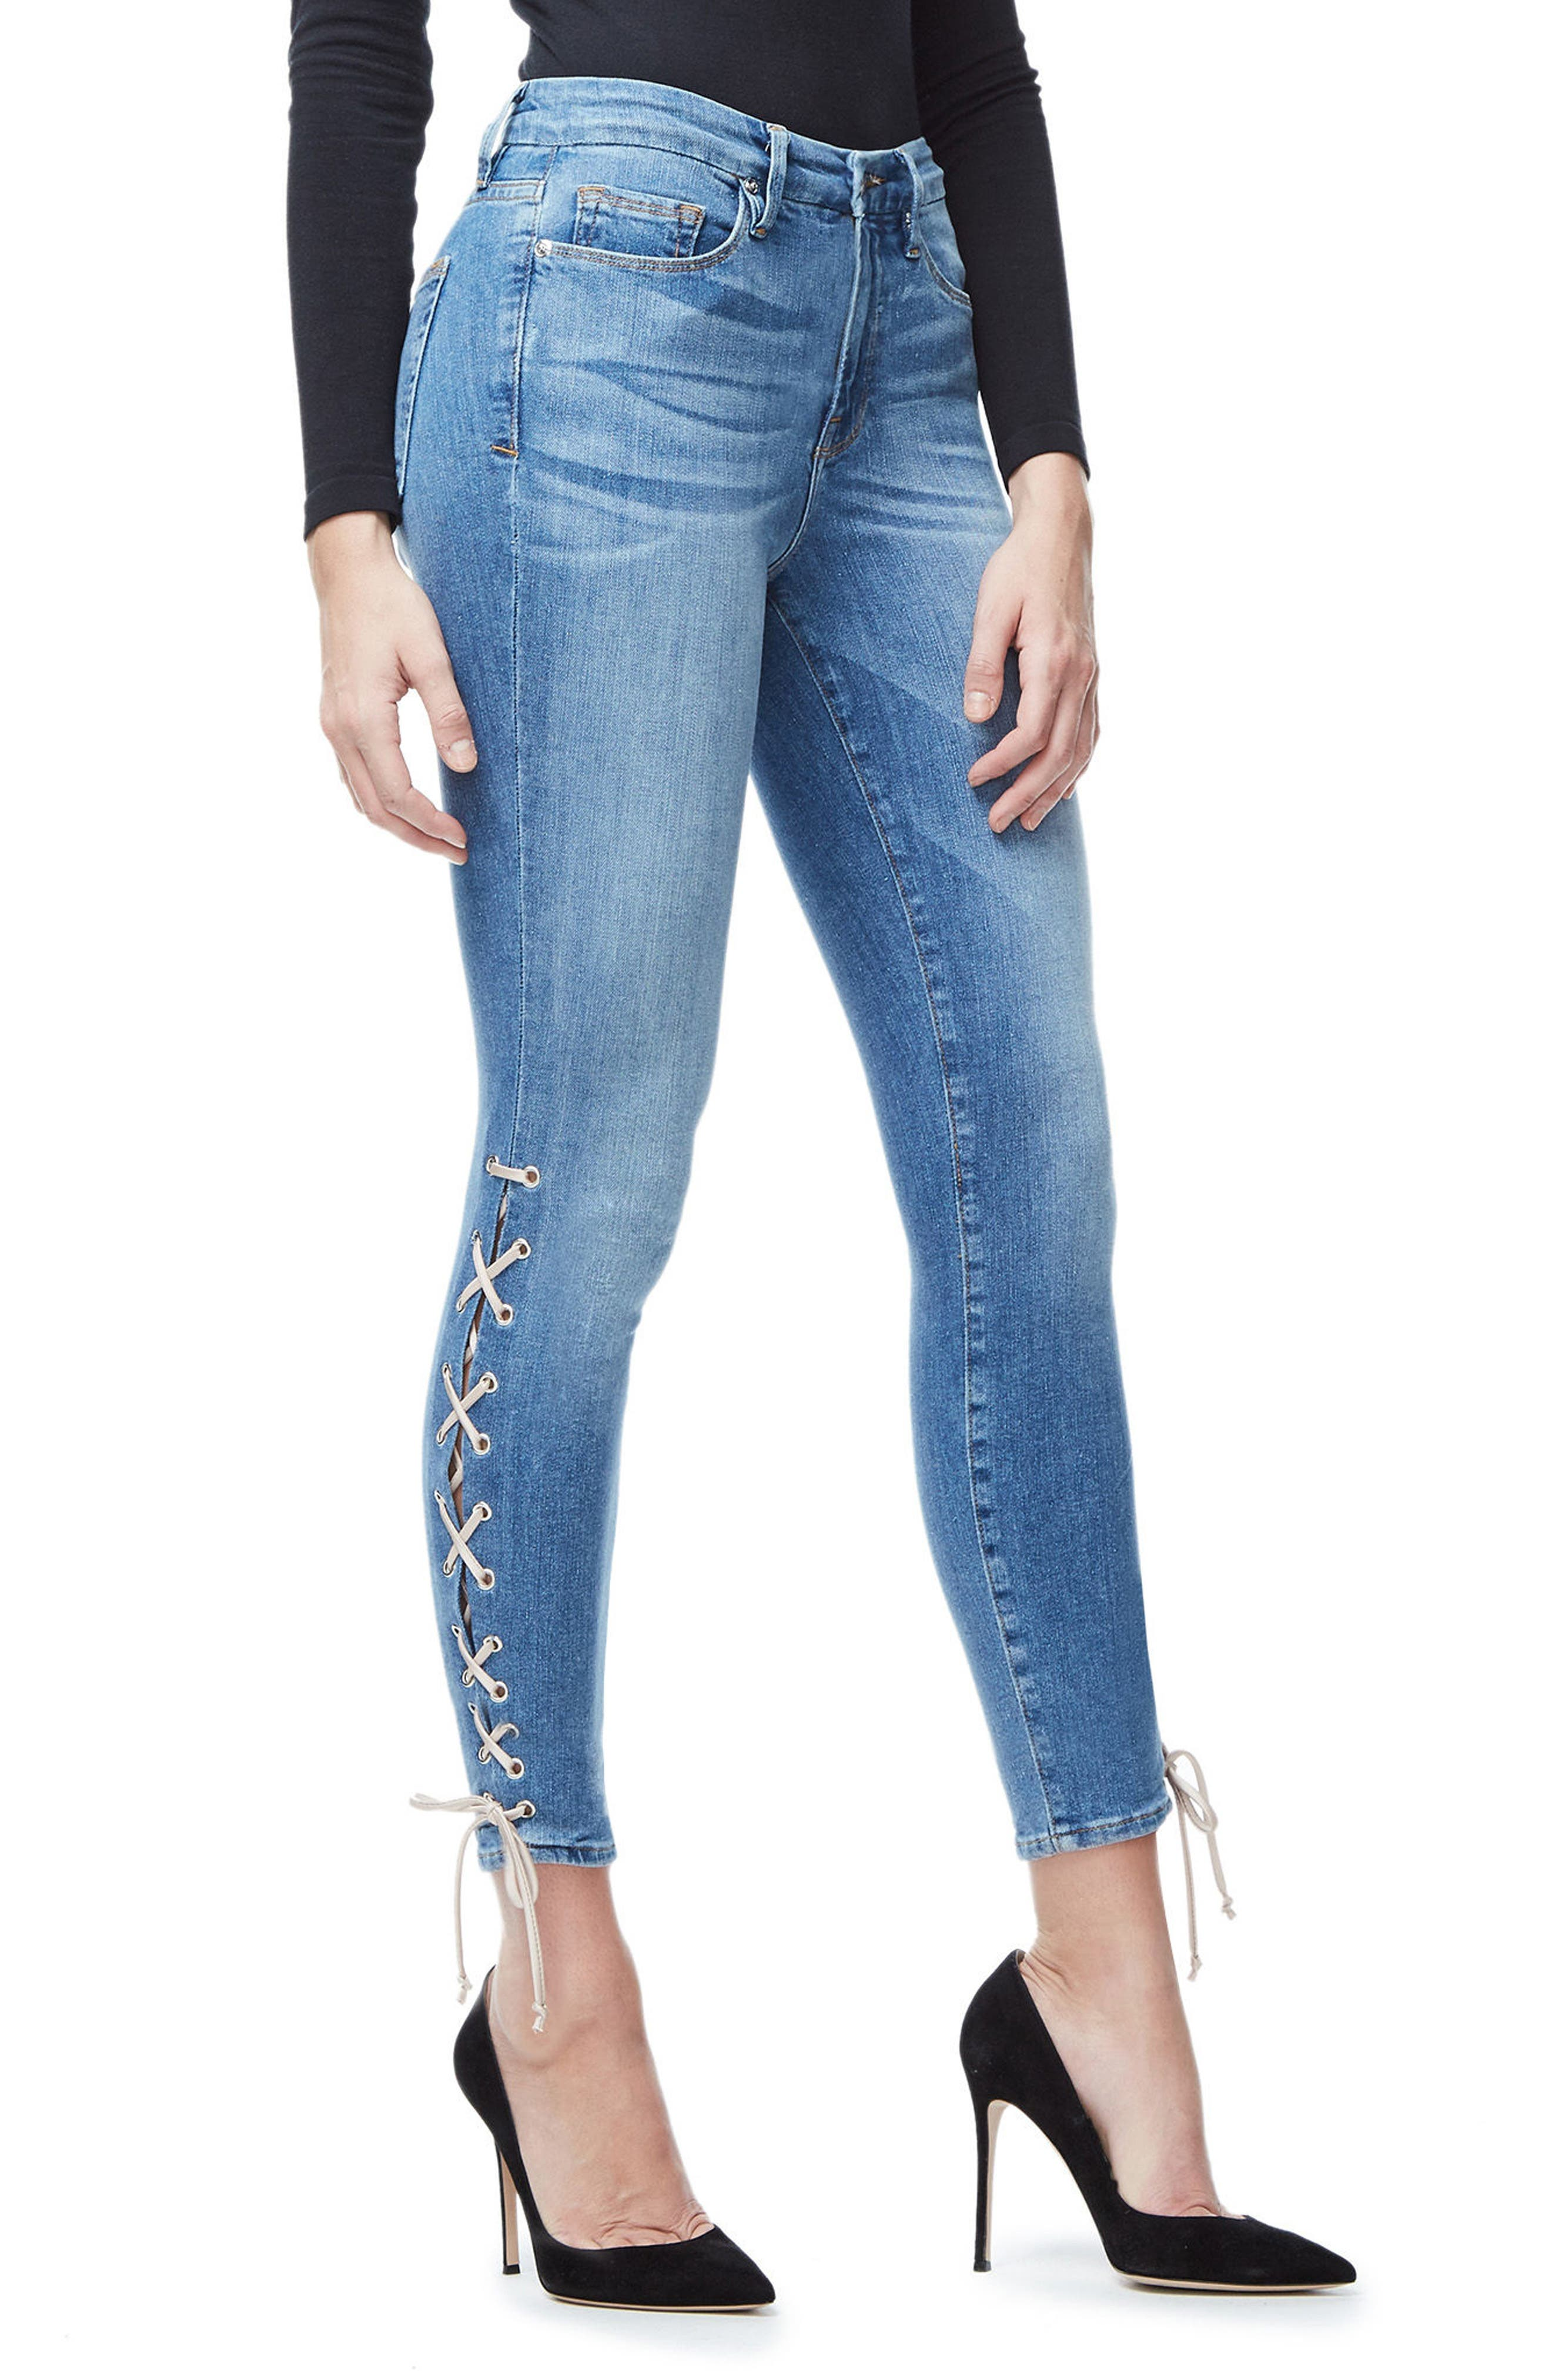 Good Legs Lace-Up High Waist Skinny Jeans,                             Alternate thumbnail 3, color,                             Blue045